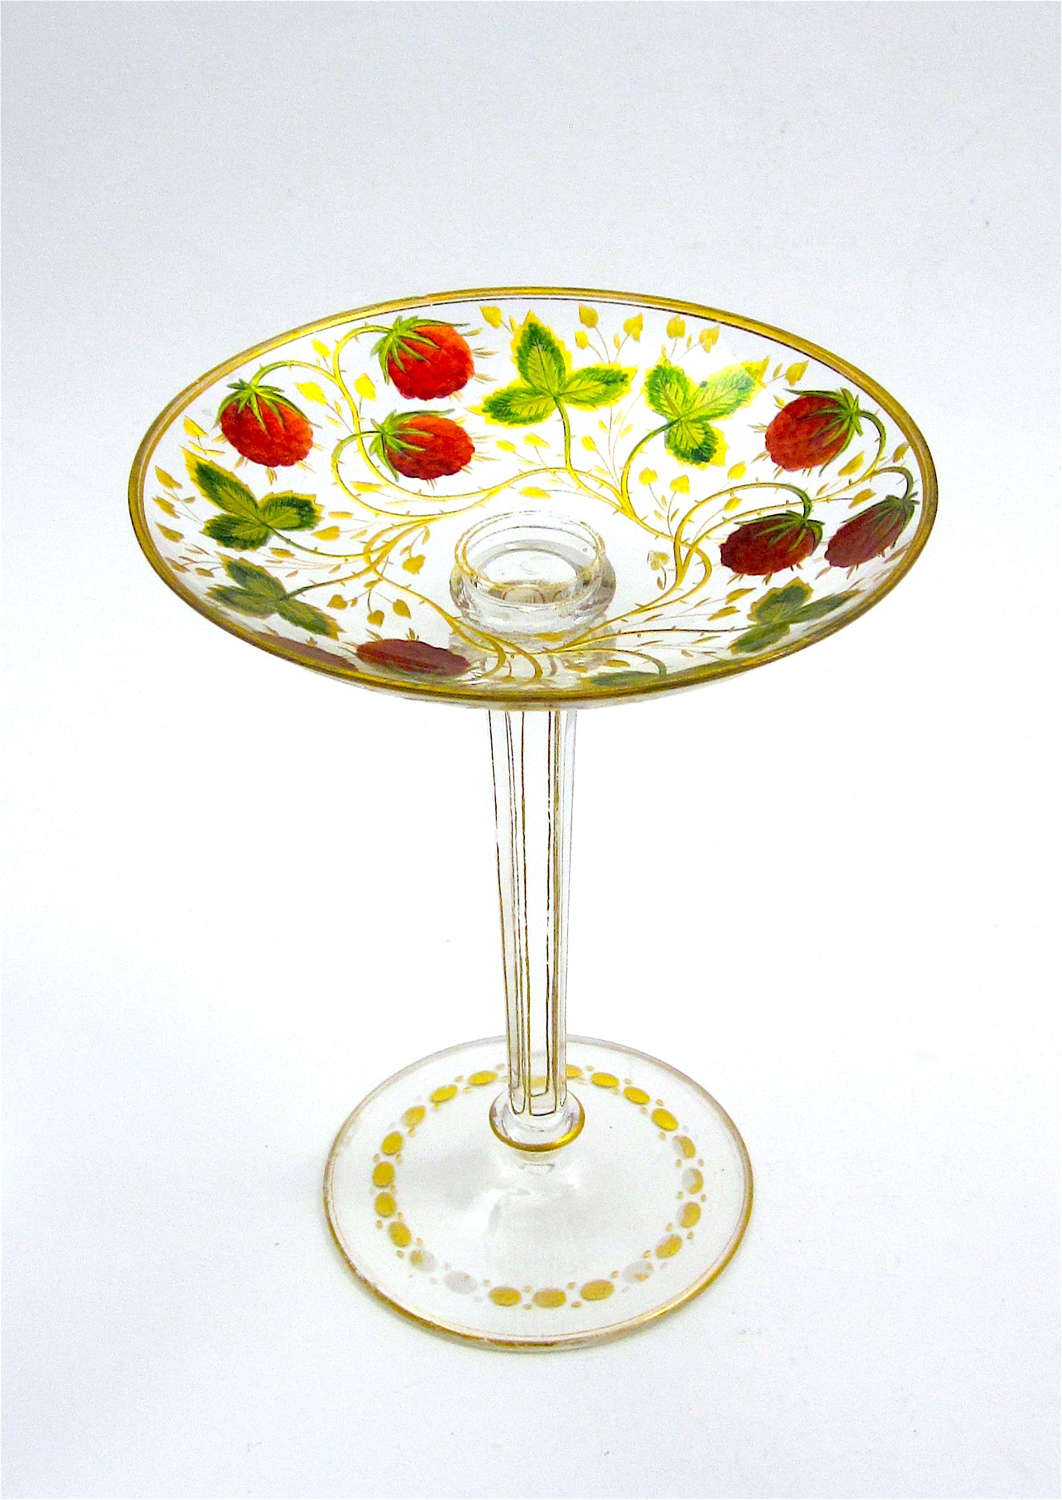 Antique Bohemian MOSER Enamelled TazzaDecoratedwith Strawberries